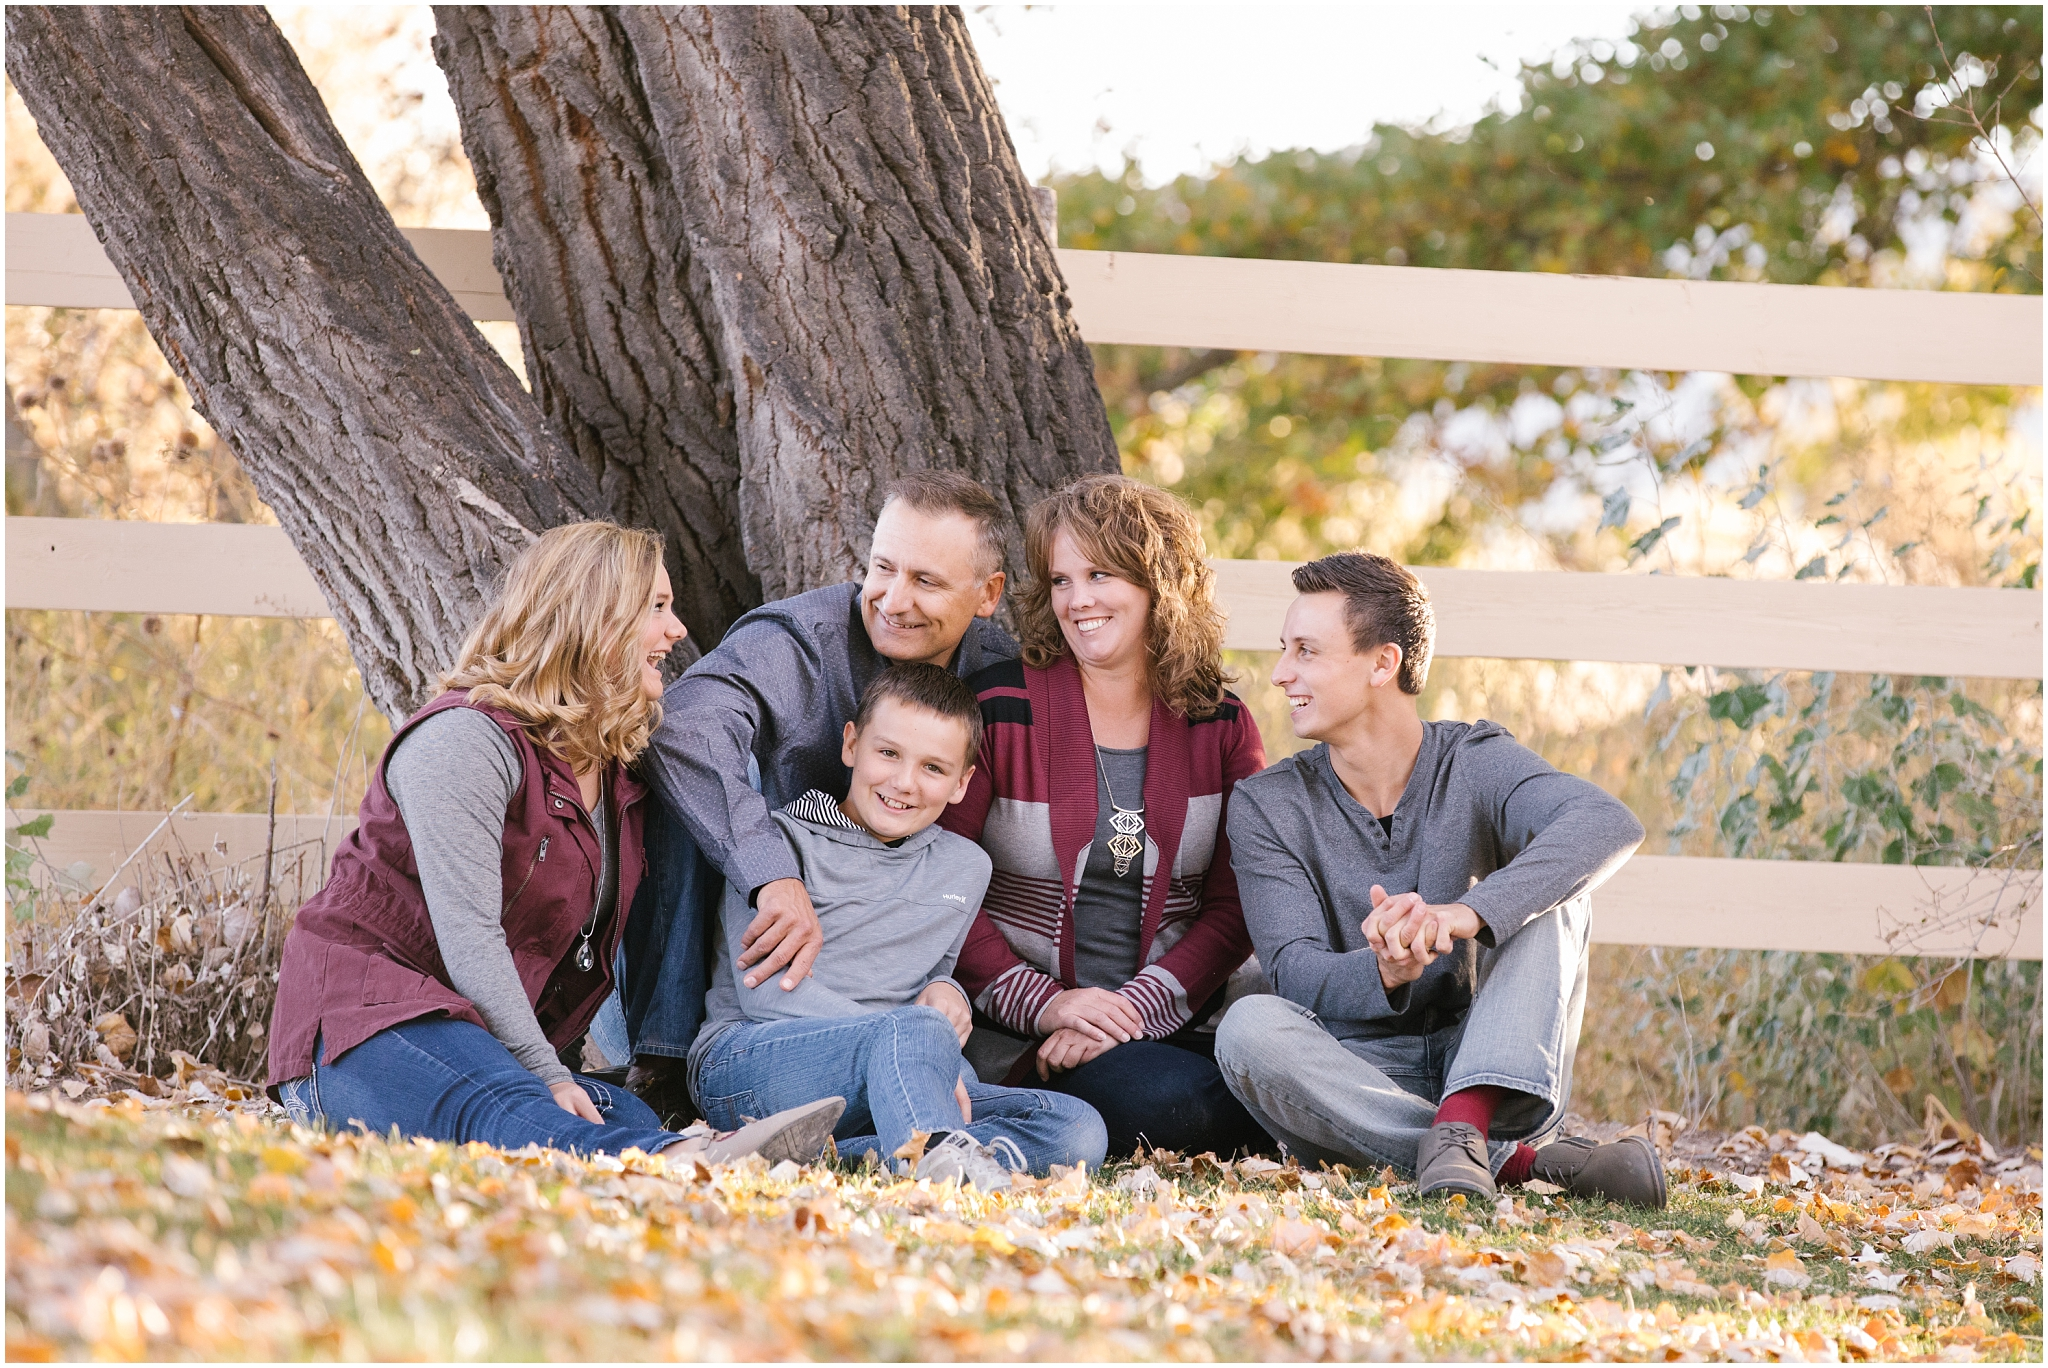 Fielding-23_Lizzie-B-Imagery-Utah-Family-Photographer-Central-Utah-Park-City-Salt-Lake-City.jpg